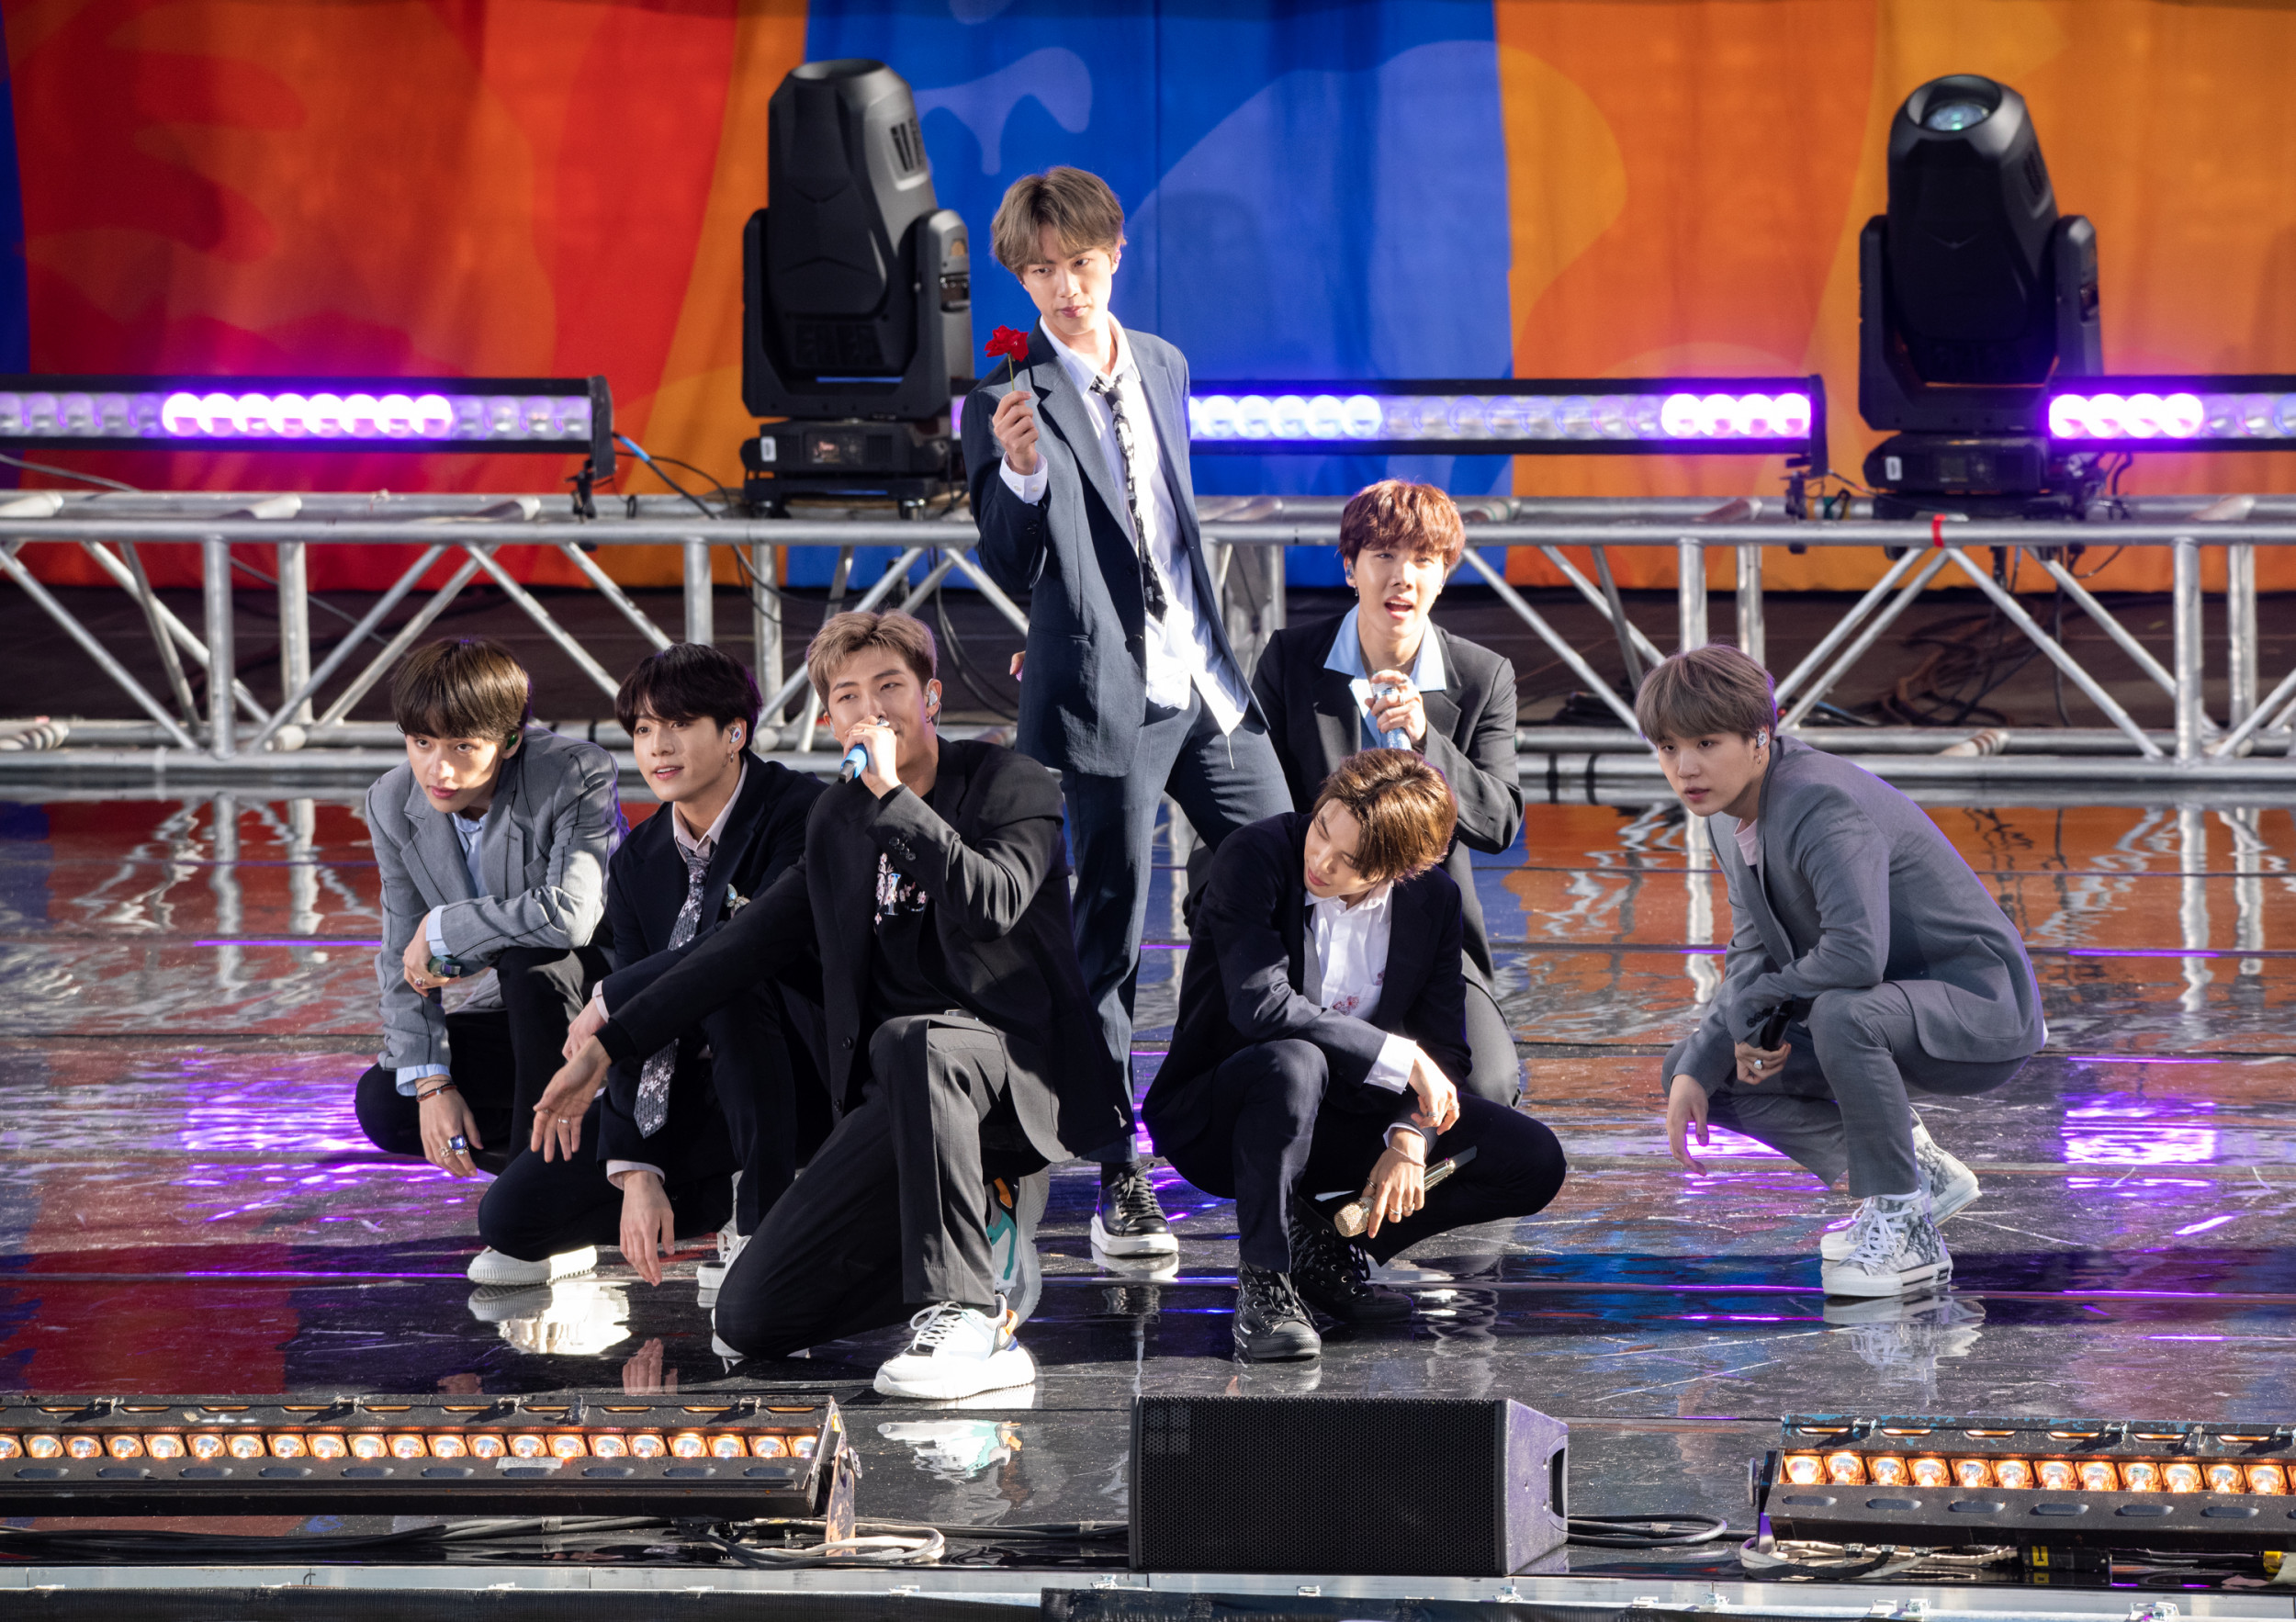 K Pop Group Bts Accused Of Catering To Authoritarian Regime